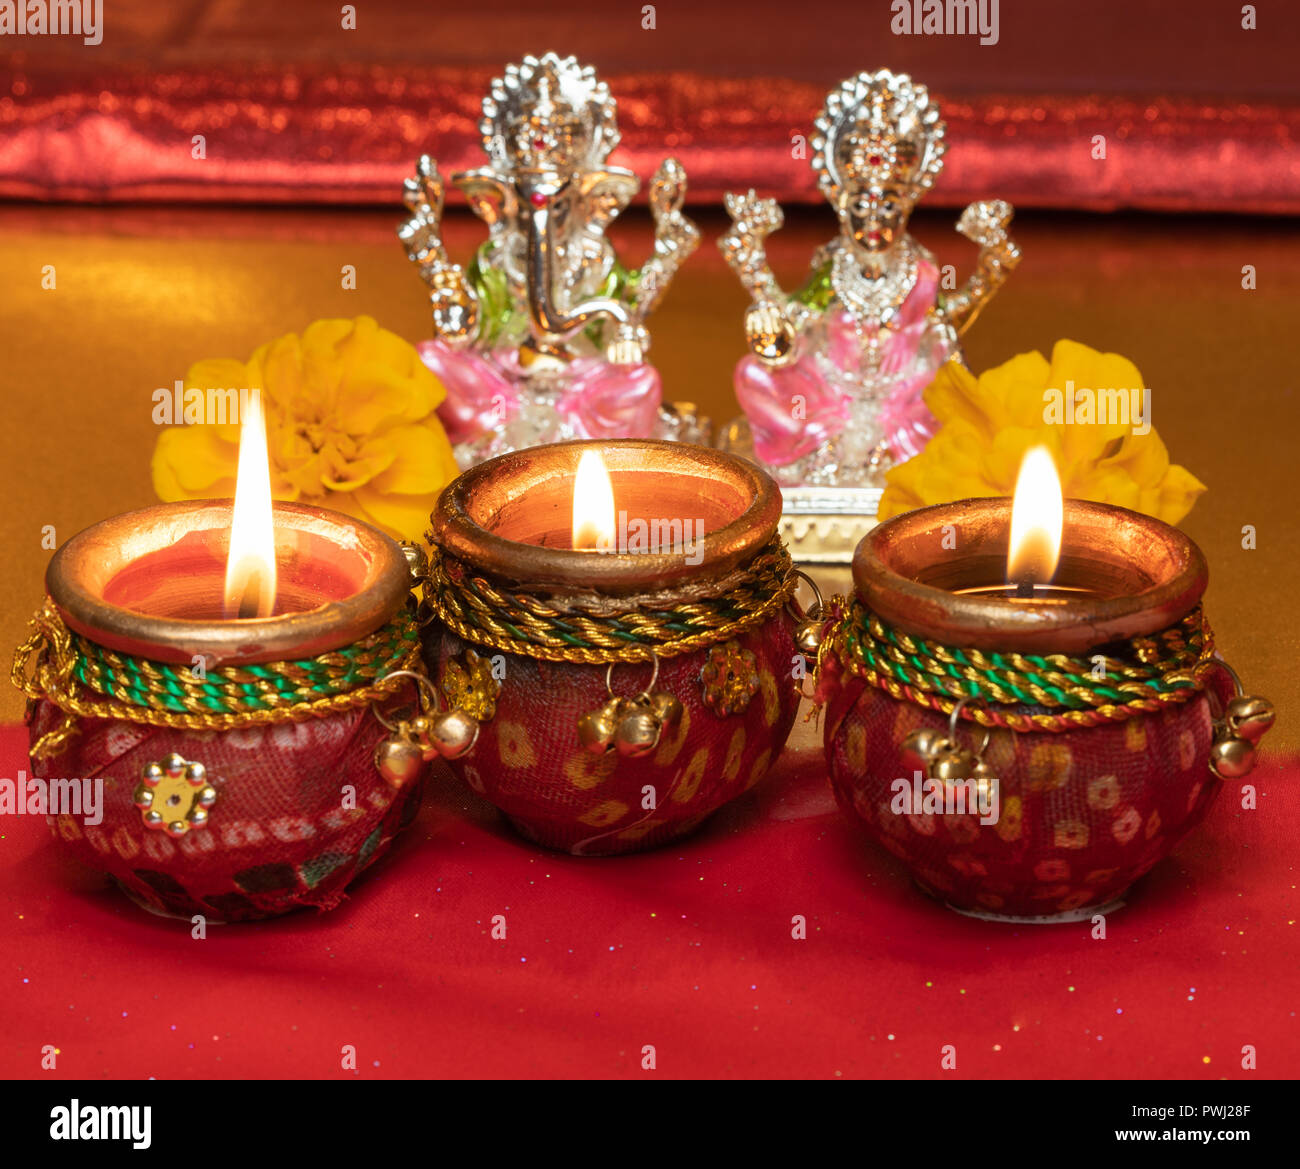 Diwali Background Showing Lit Lamps Against Hindu Idols of Deities Lakshmi and Ganesh Stock Photo